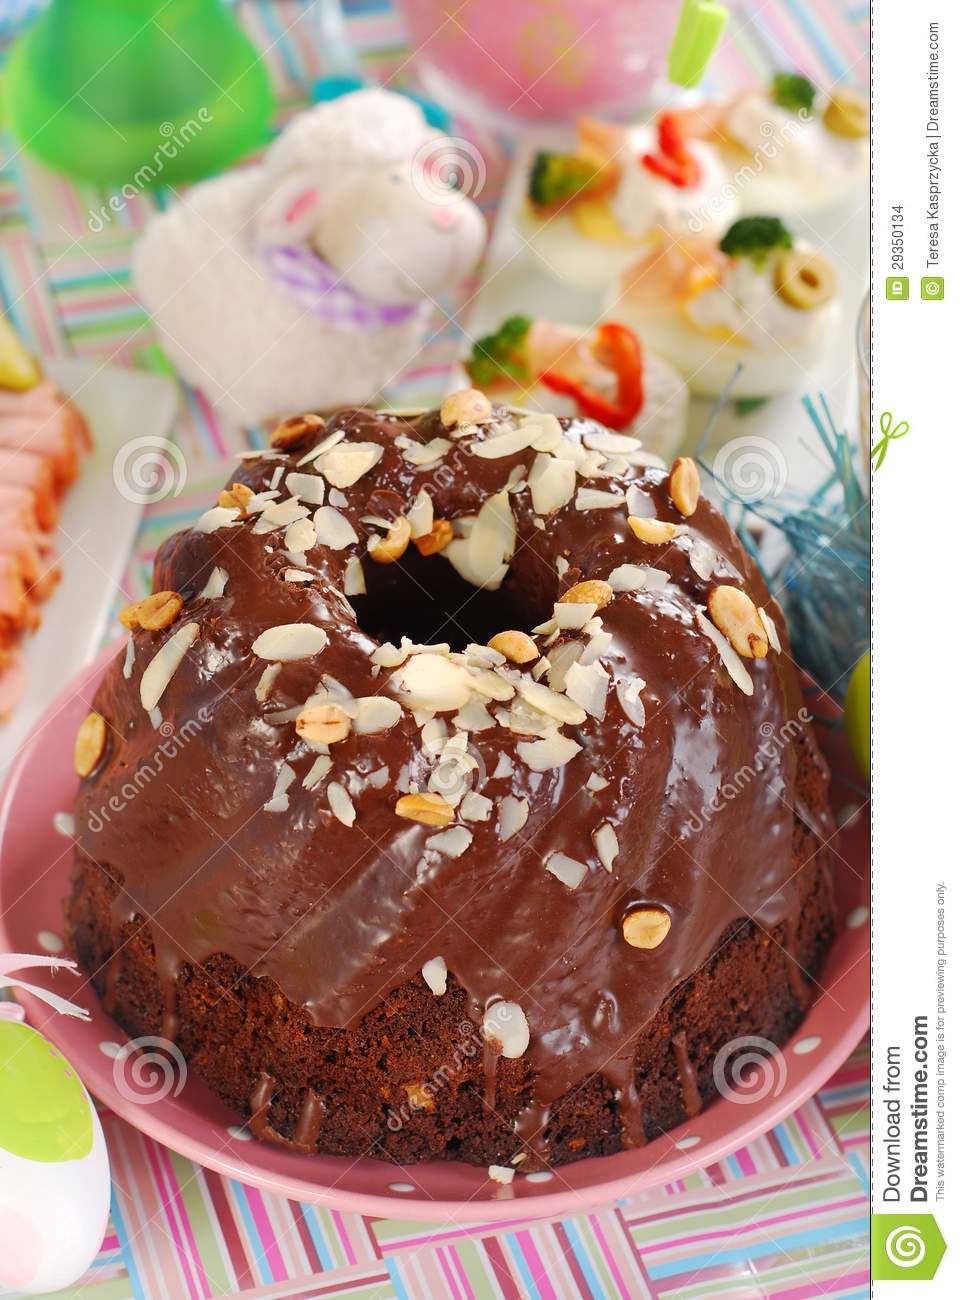 Chocolate Ring Cake With Almonds And Nuts For Easter Stock Images ...